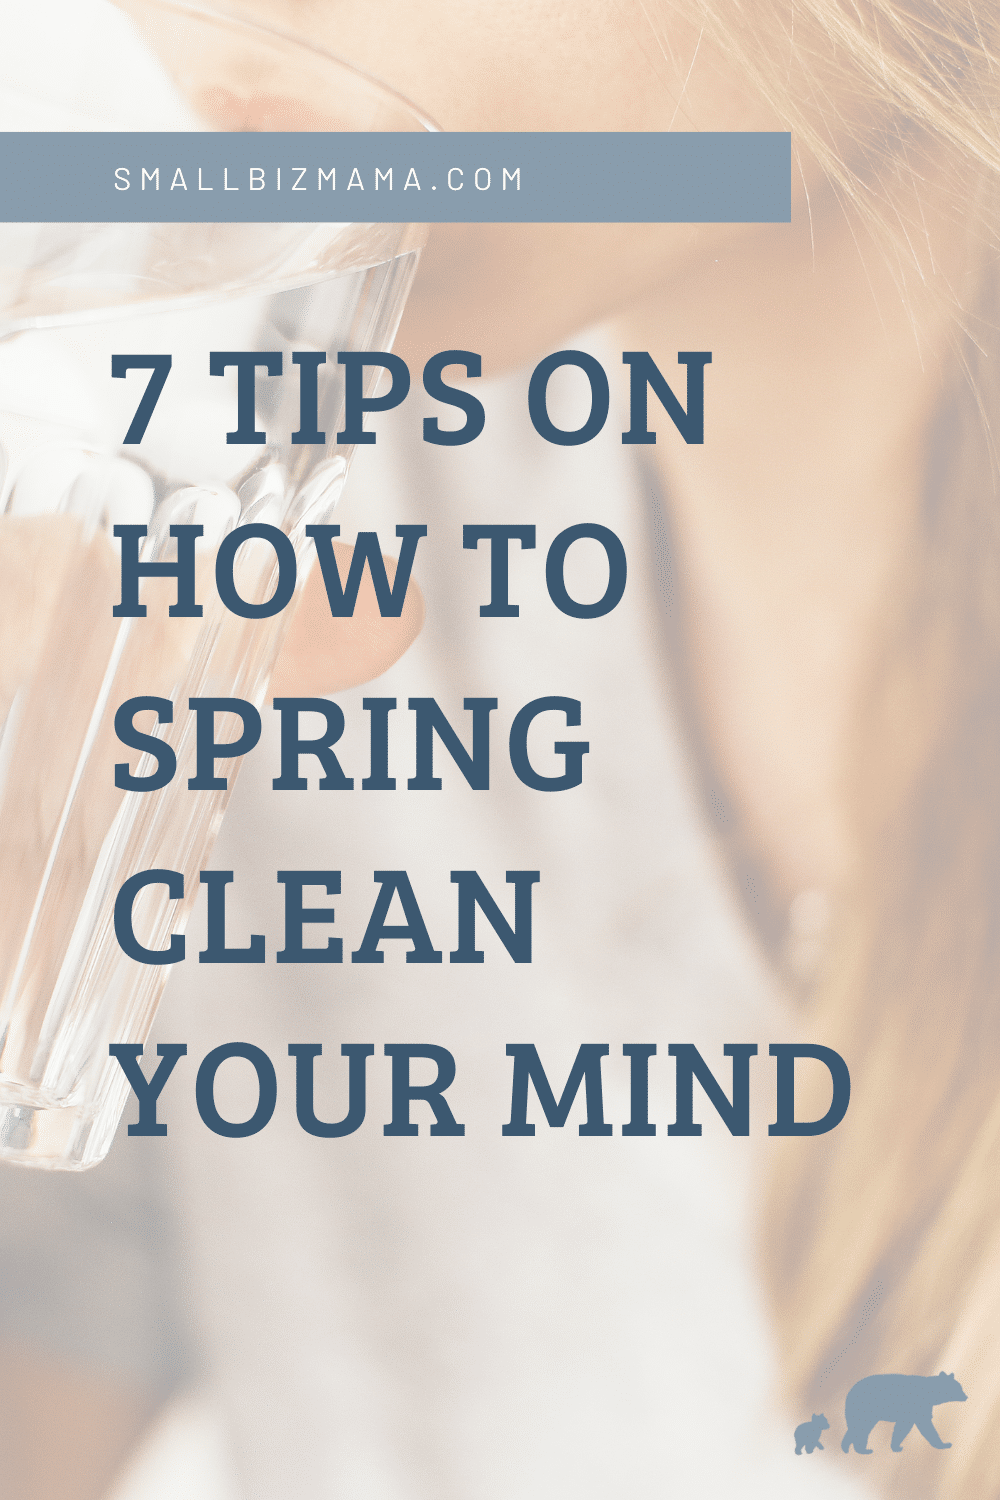 7 tips on how to spring clean your mind